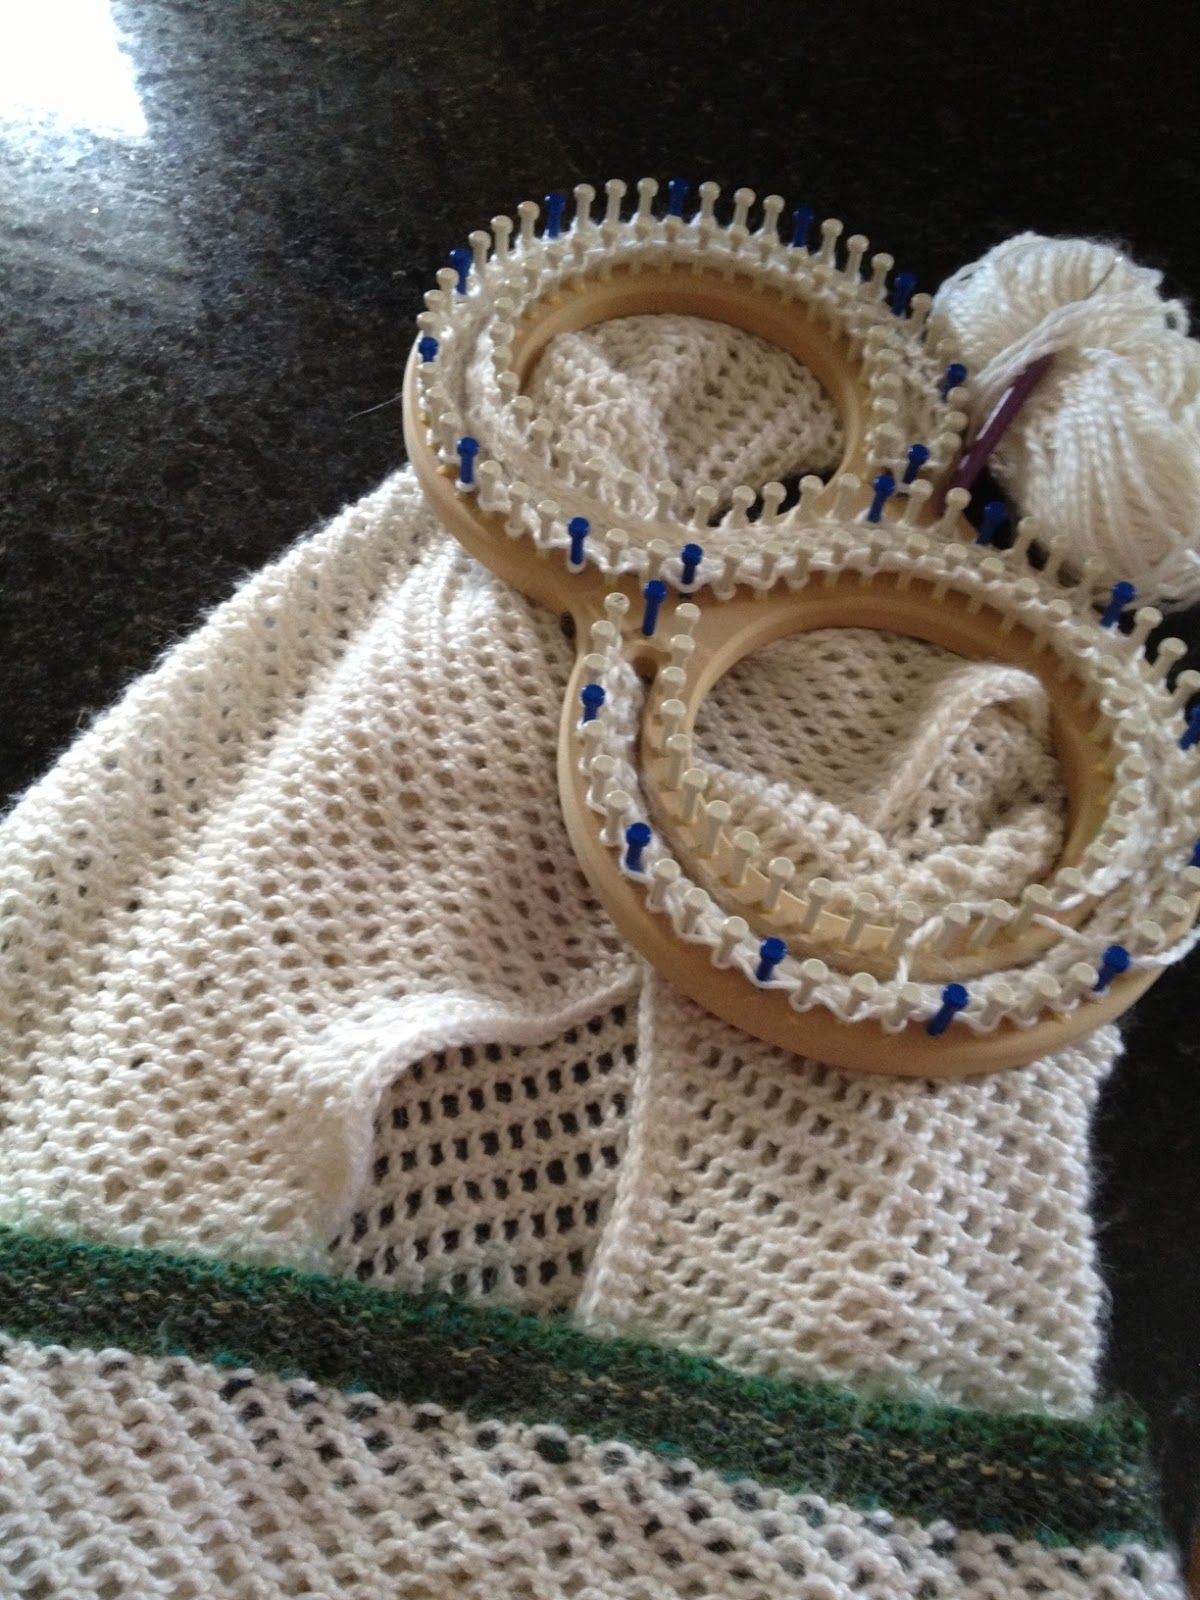 Knitting A Baby Blanket On A Round Loom : Loom knit afghan lace loomed blanket